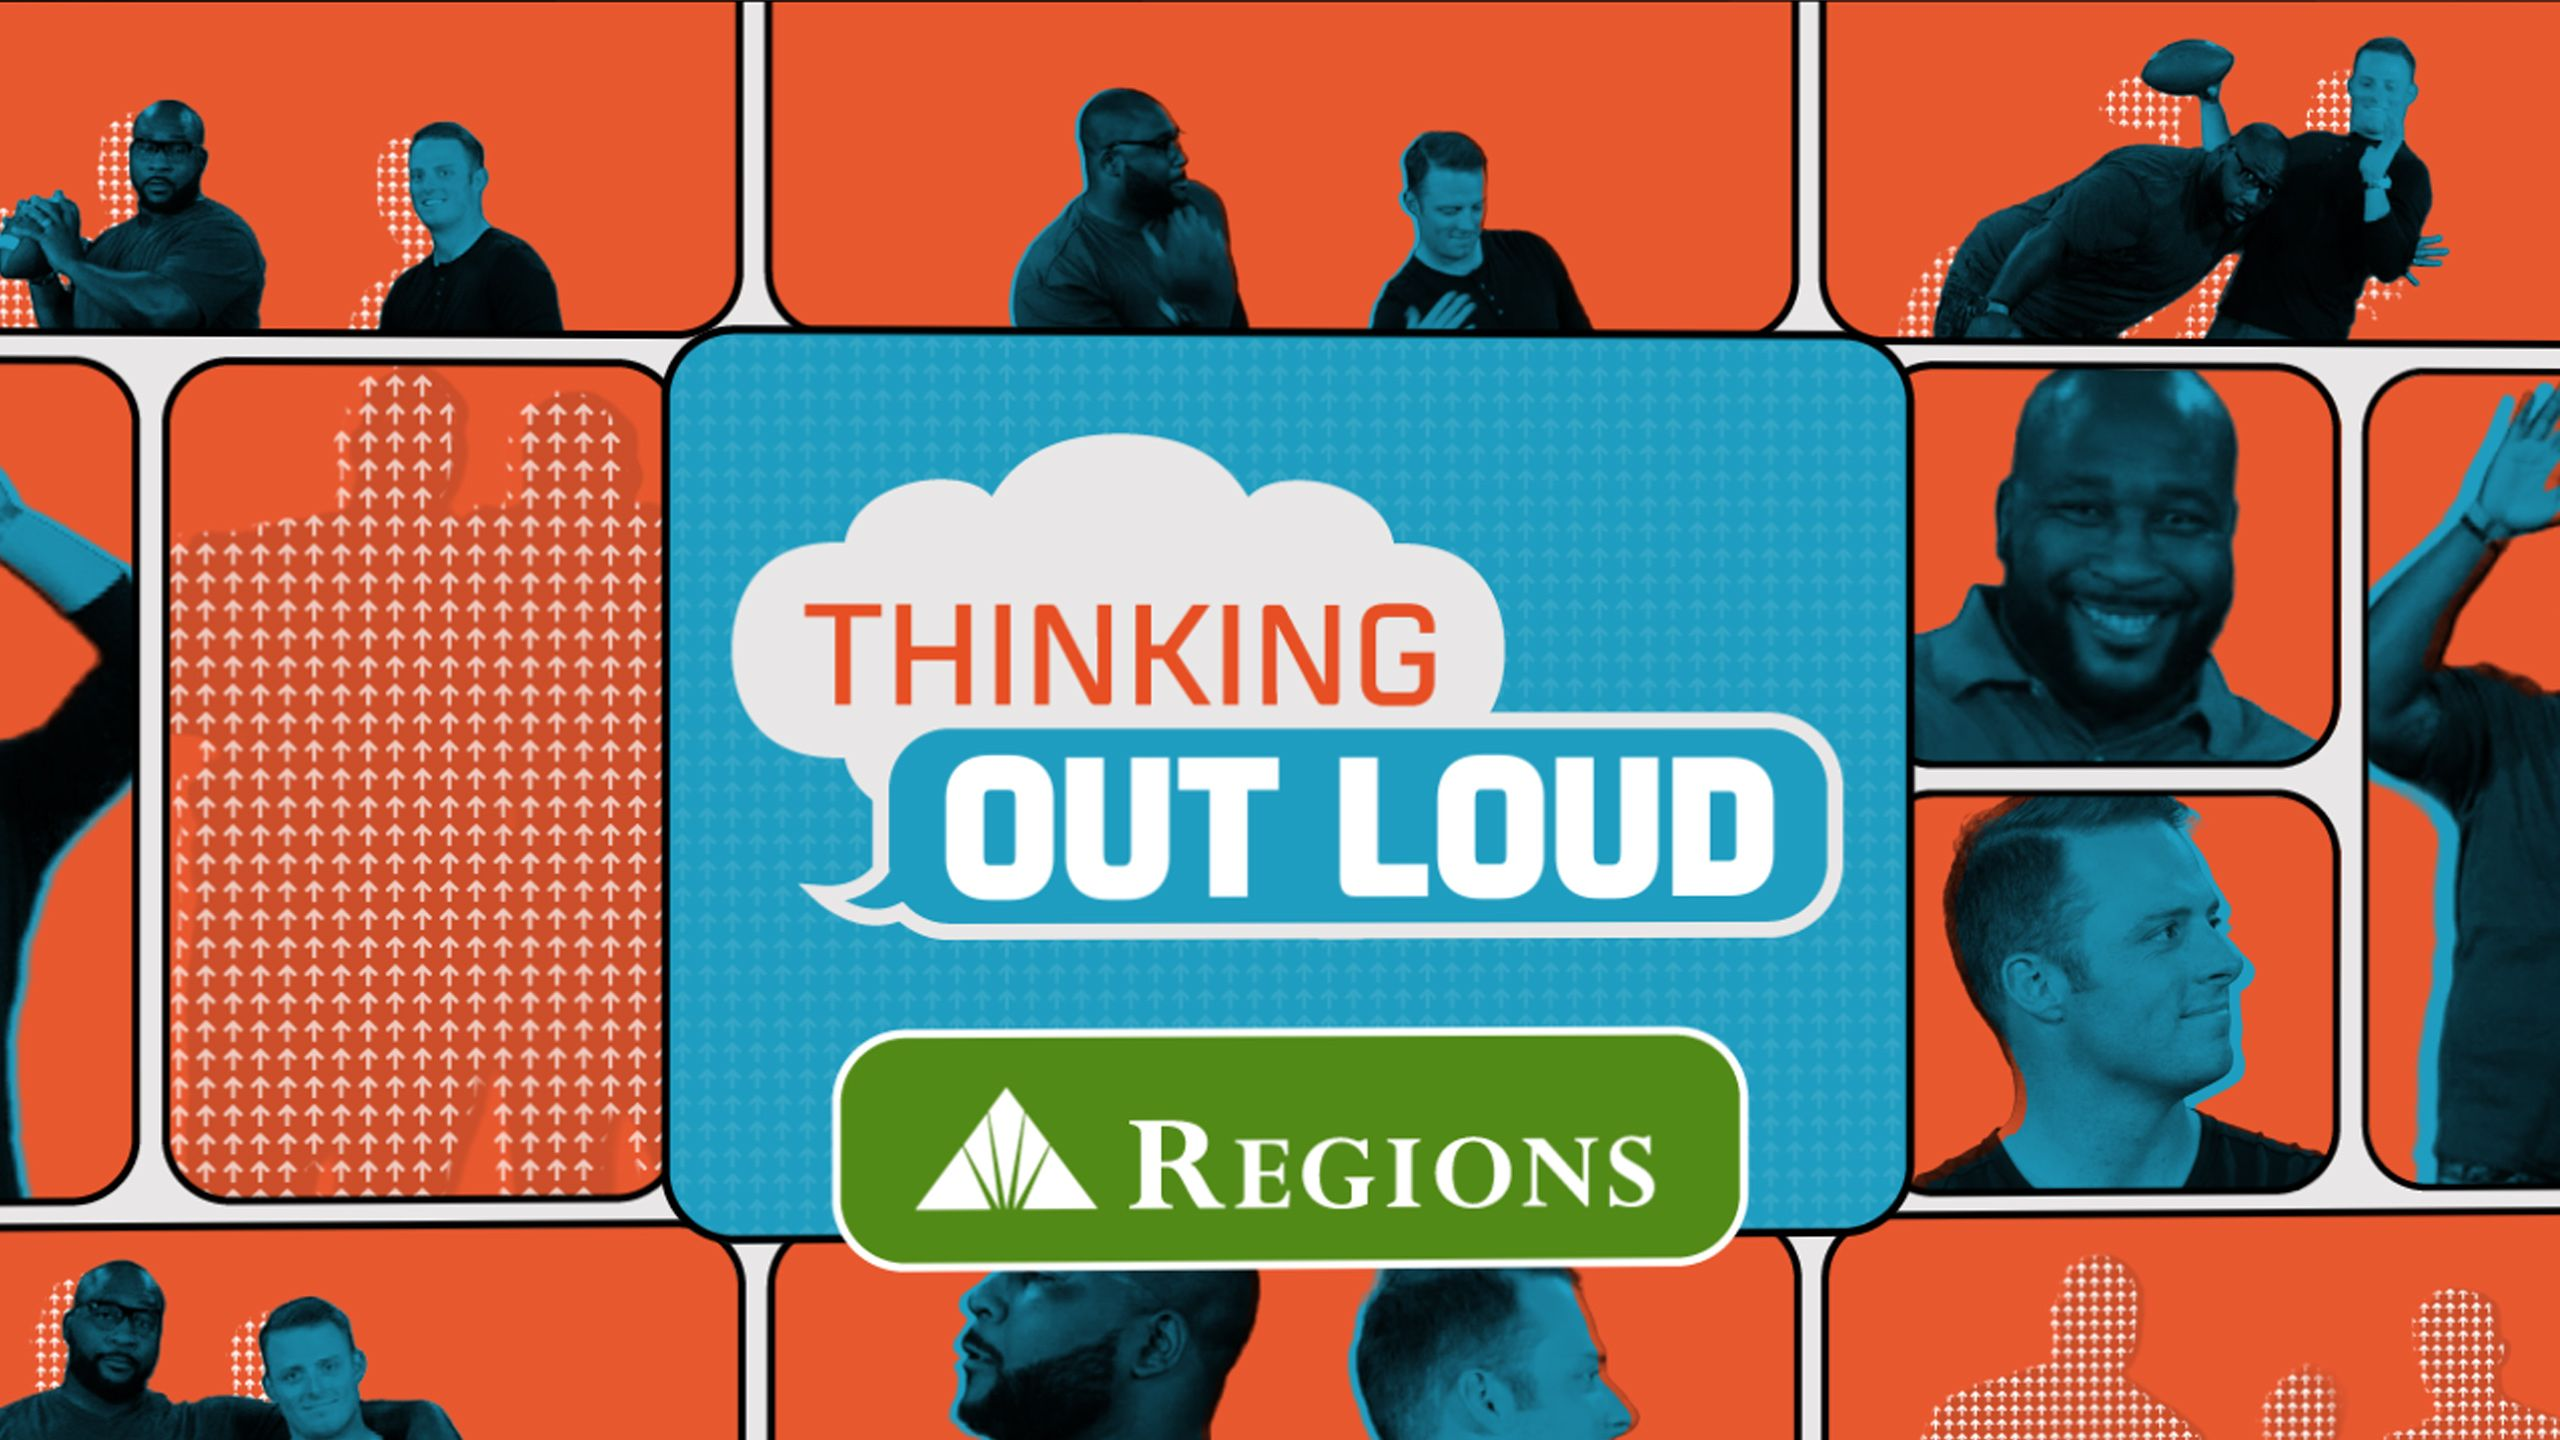 Mon, 10/23 - Thinking Out Loud Presented by Regions Bank